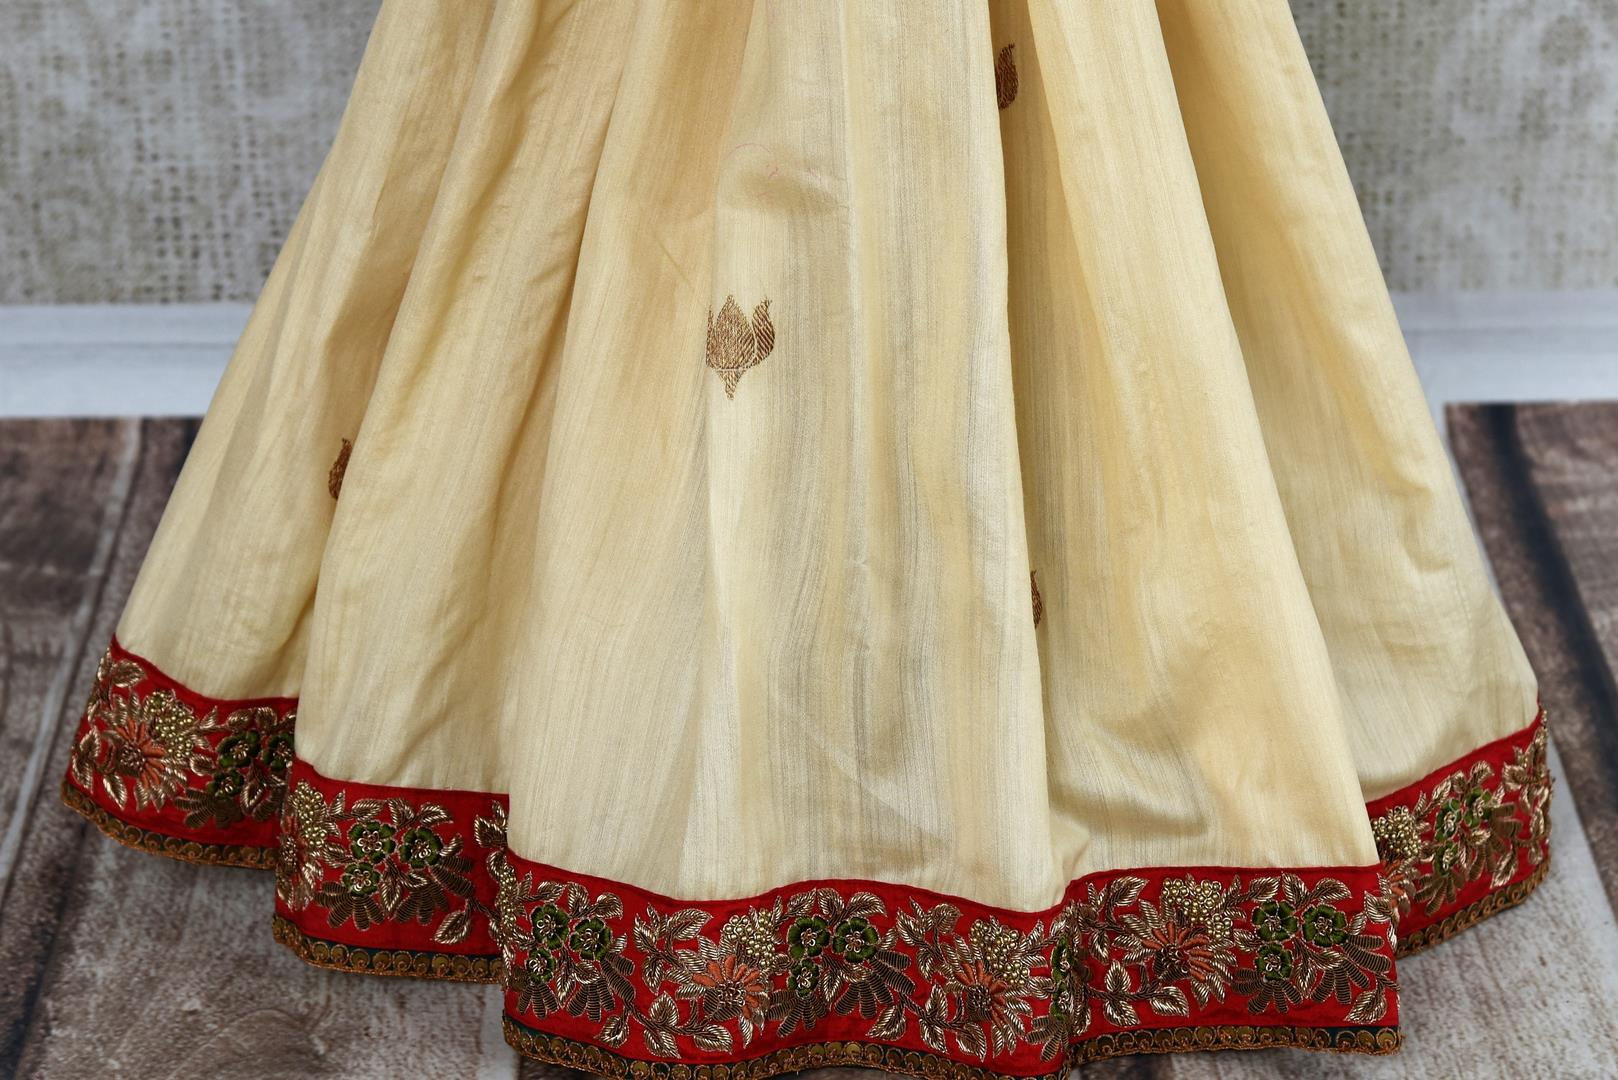 Buy beautiful cream tussar georgette Banarasi saree online in USA with embroidery, The saree is a beautiful drape for a traditional Indian look at weddings. Find more such exquisite Indian designer saris in USA at Pure Elegance Indian fashion store. Shop now.-pleats